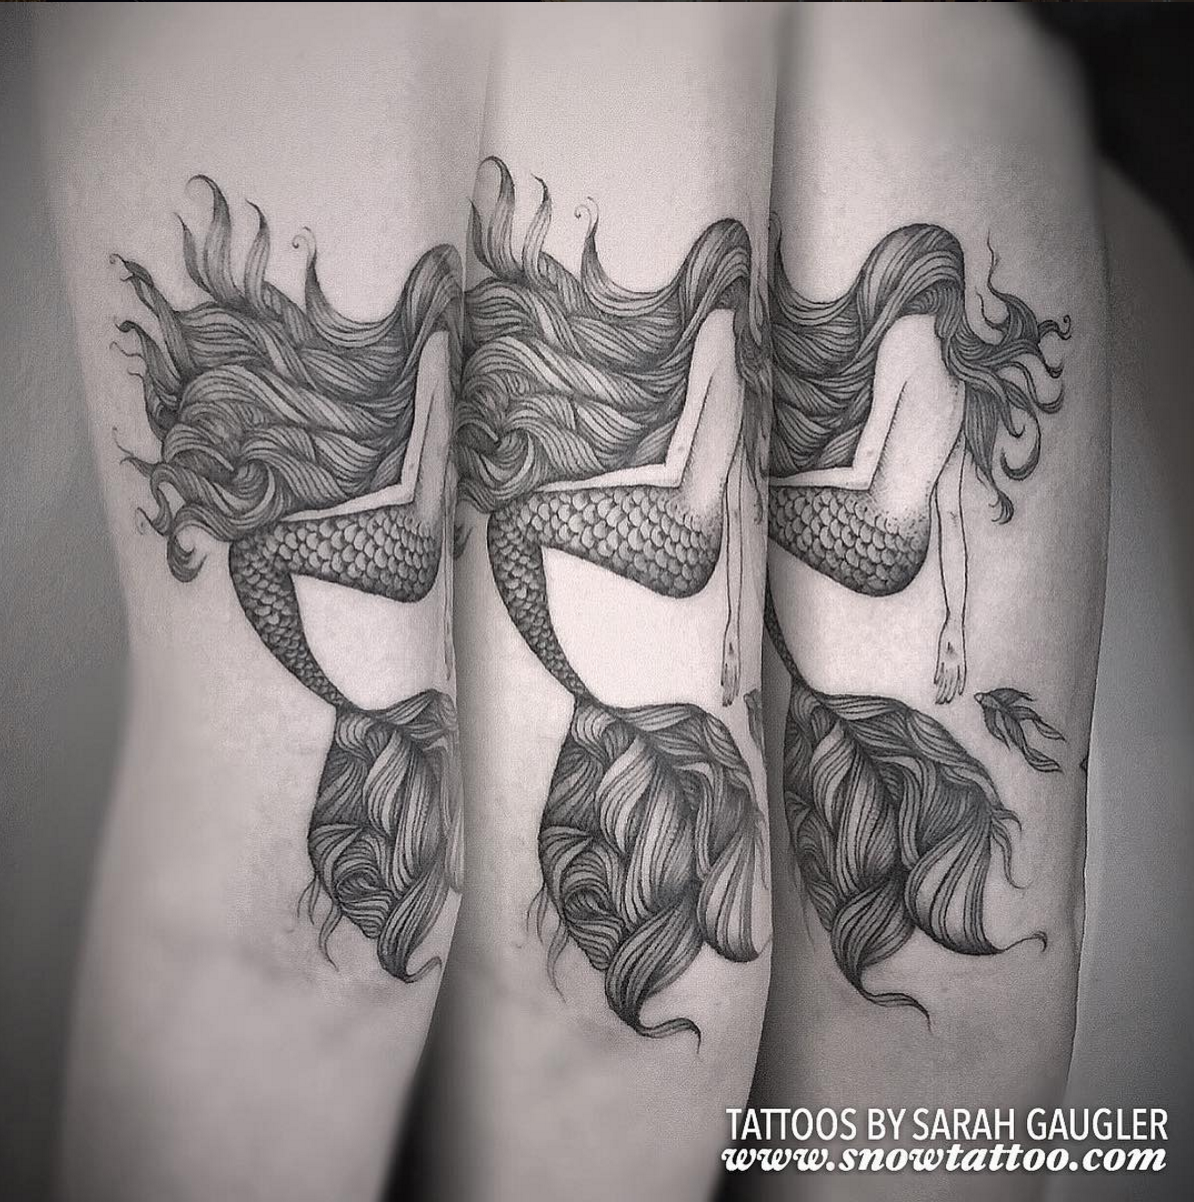 Sarah Gaugler Snow Tattoo Custom Signature Original Mermaid Intricate Detailed Authentic Fine Line Finelinetattoo dotwork Blackwork New York Best Tattoos Best Tattoo Artist NYC SarahgauglerMermaid.png